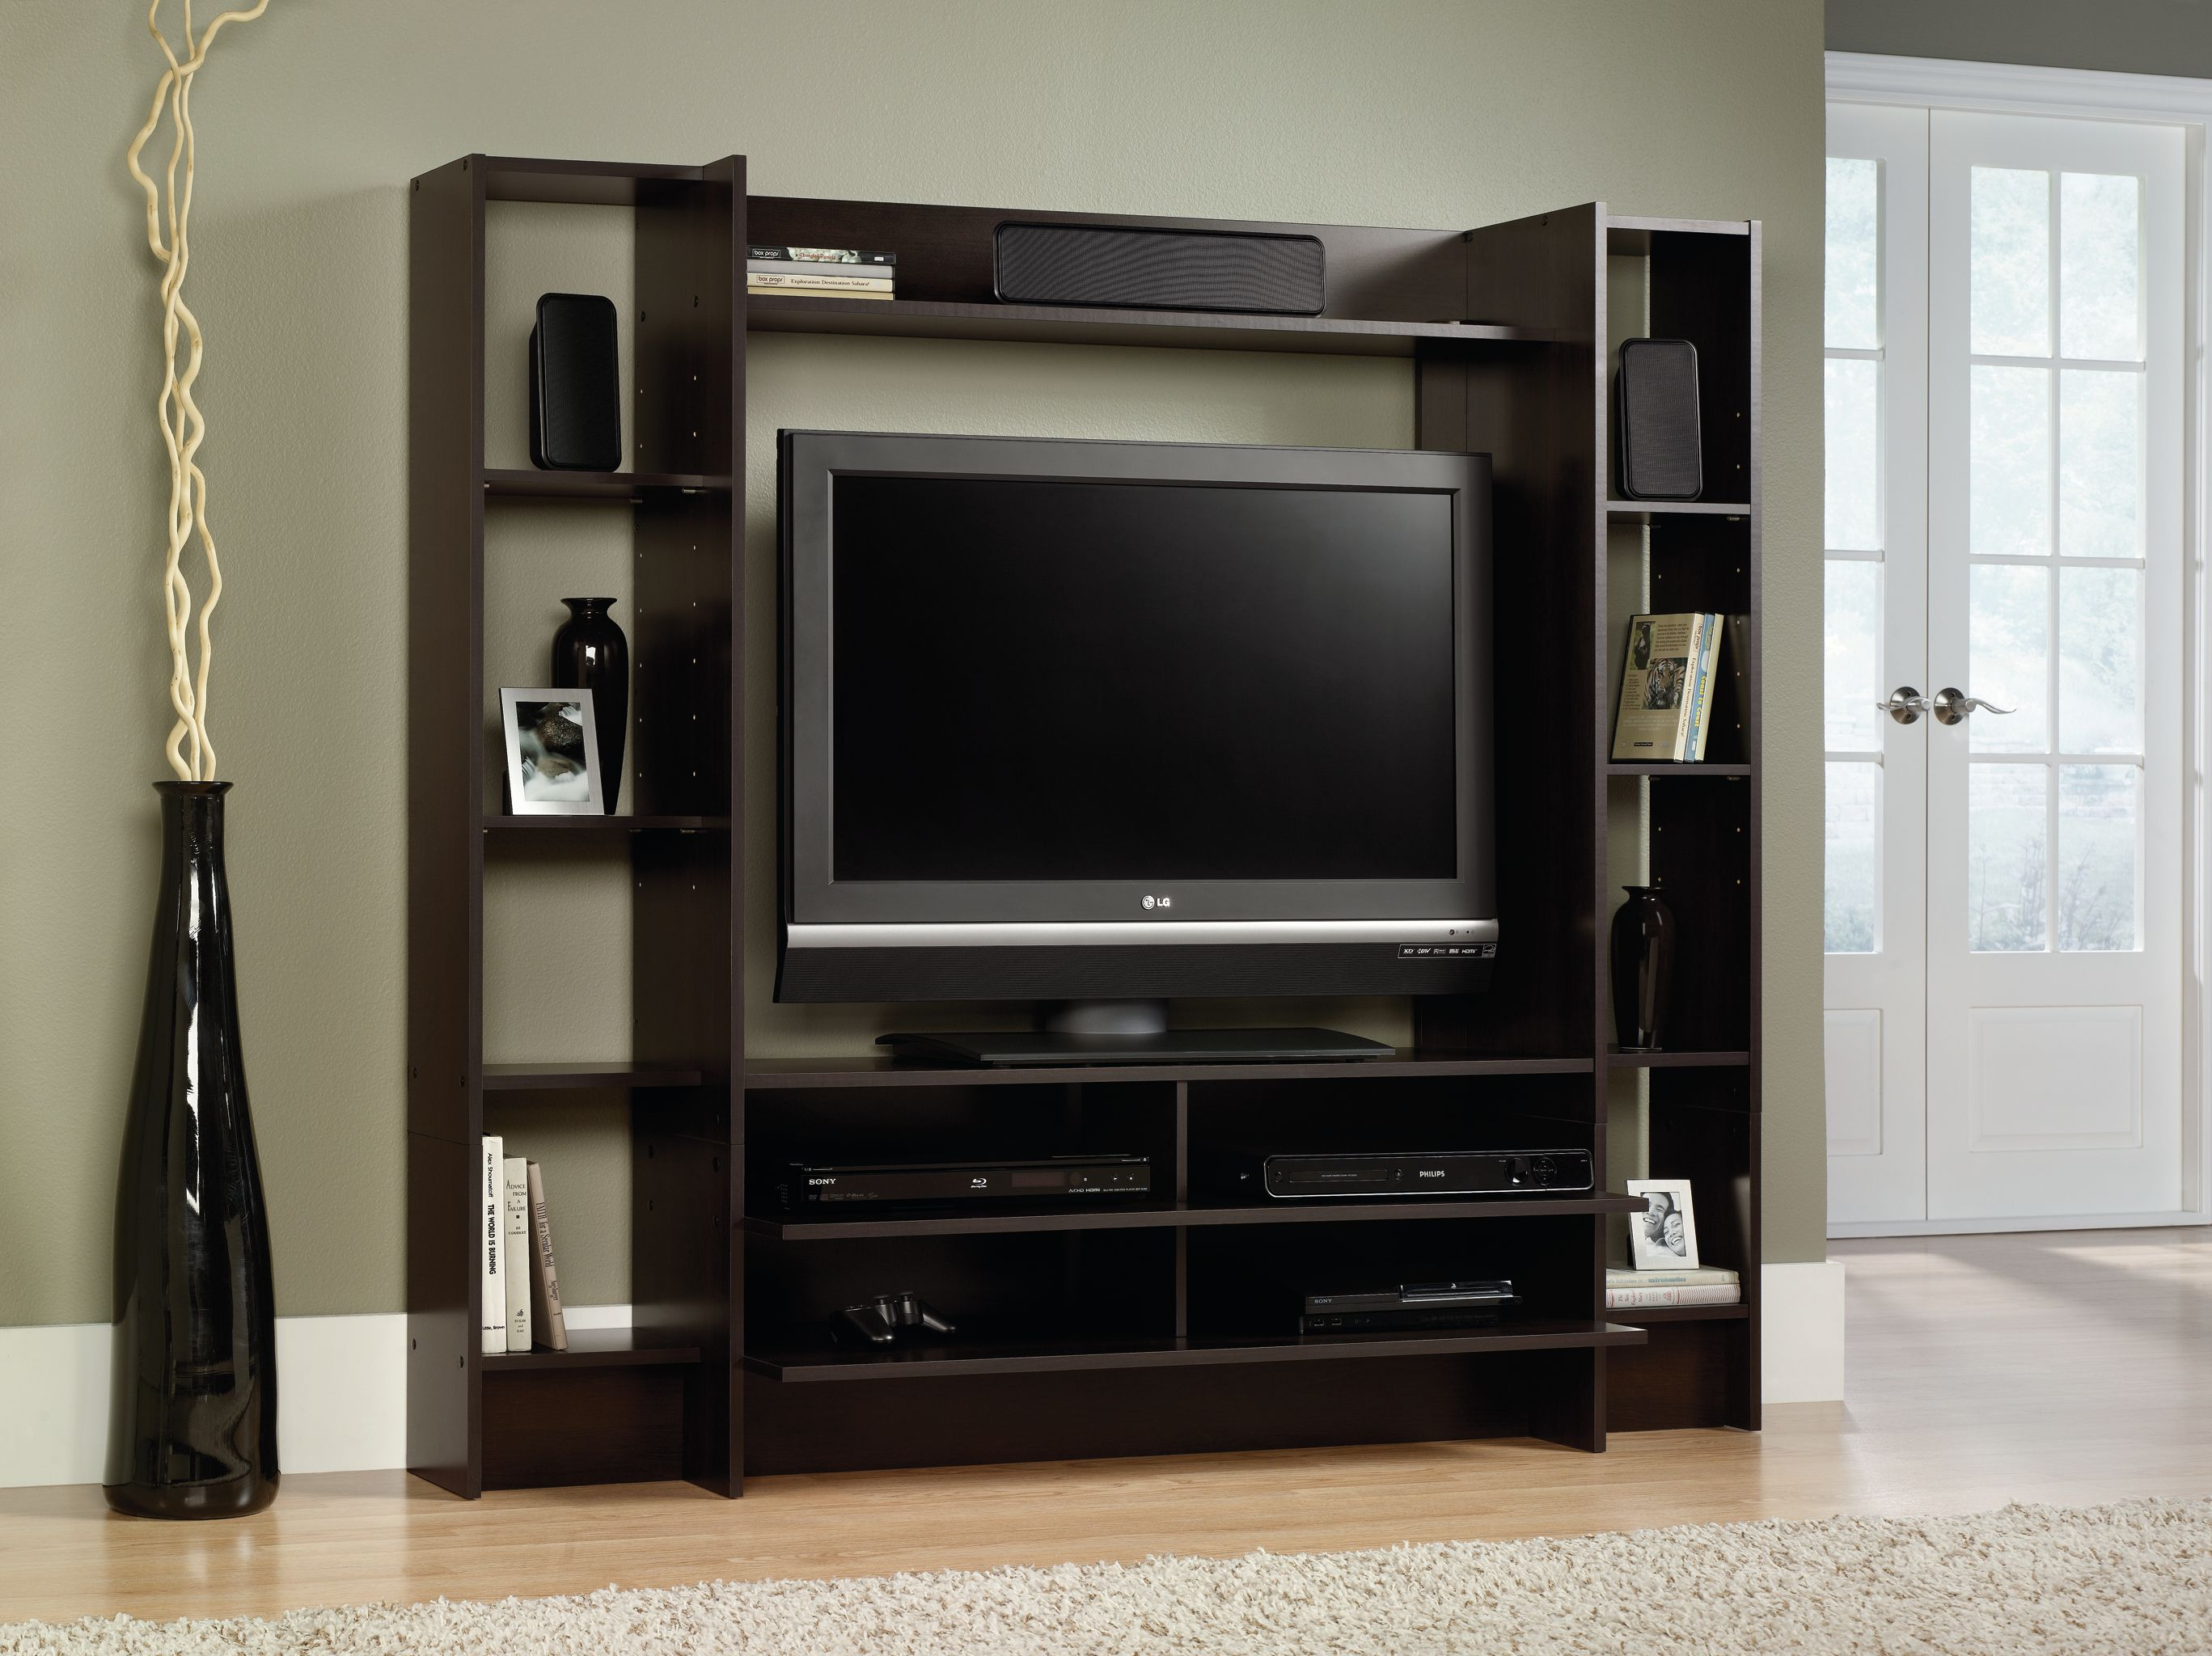 Tv stand console media home entertainment center wood storage cabinet furniture